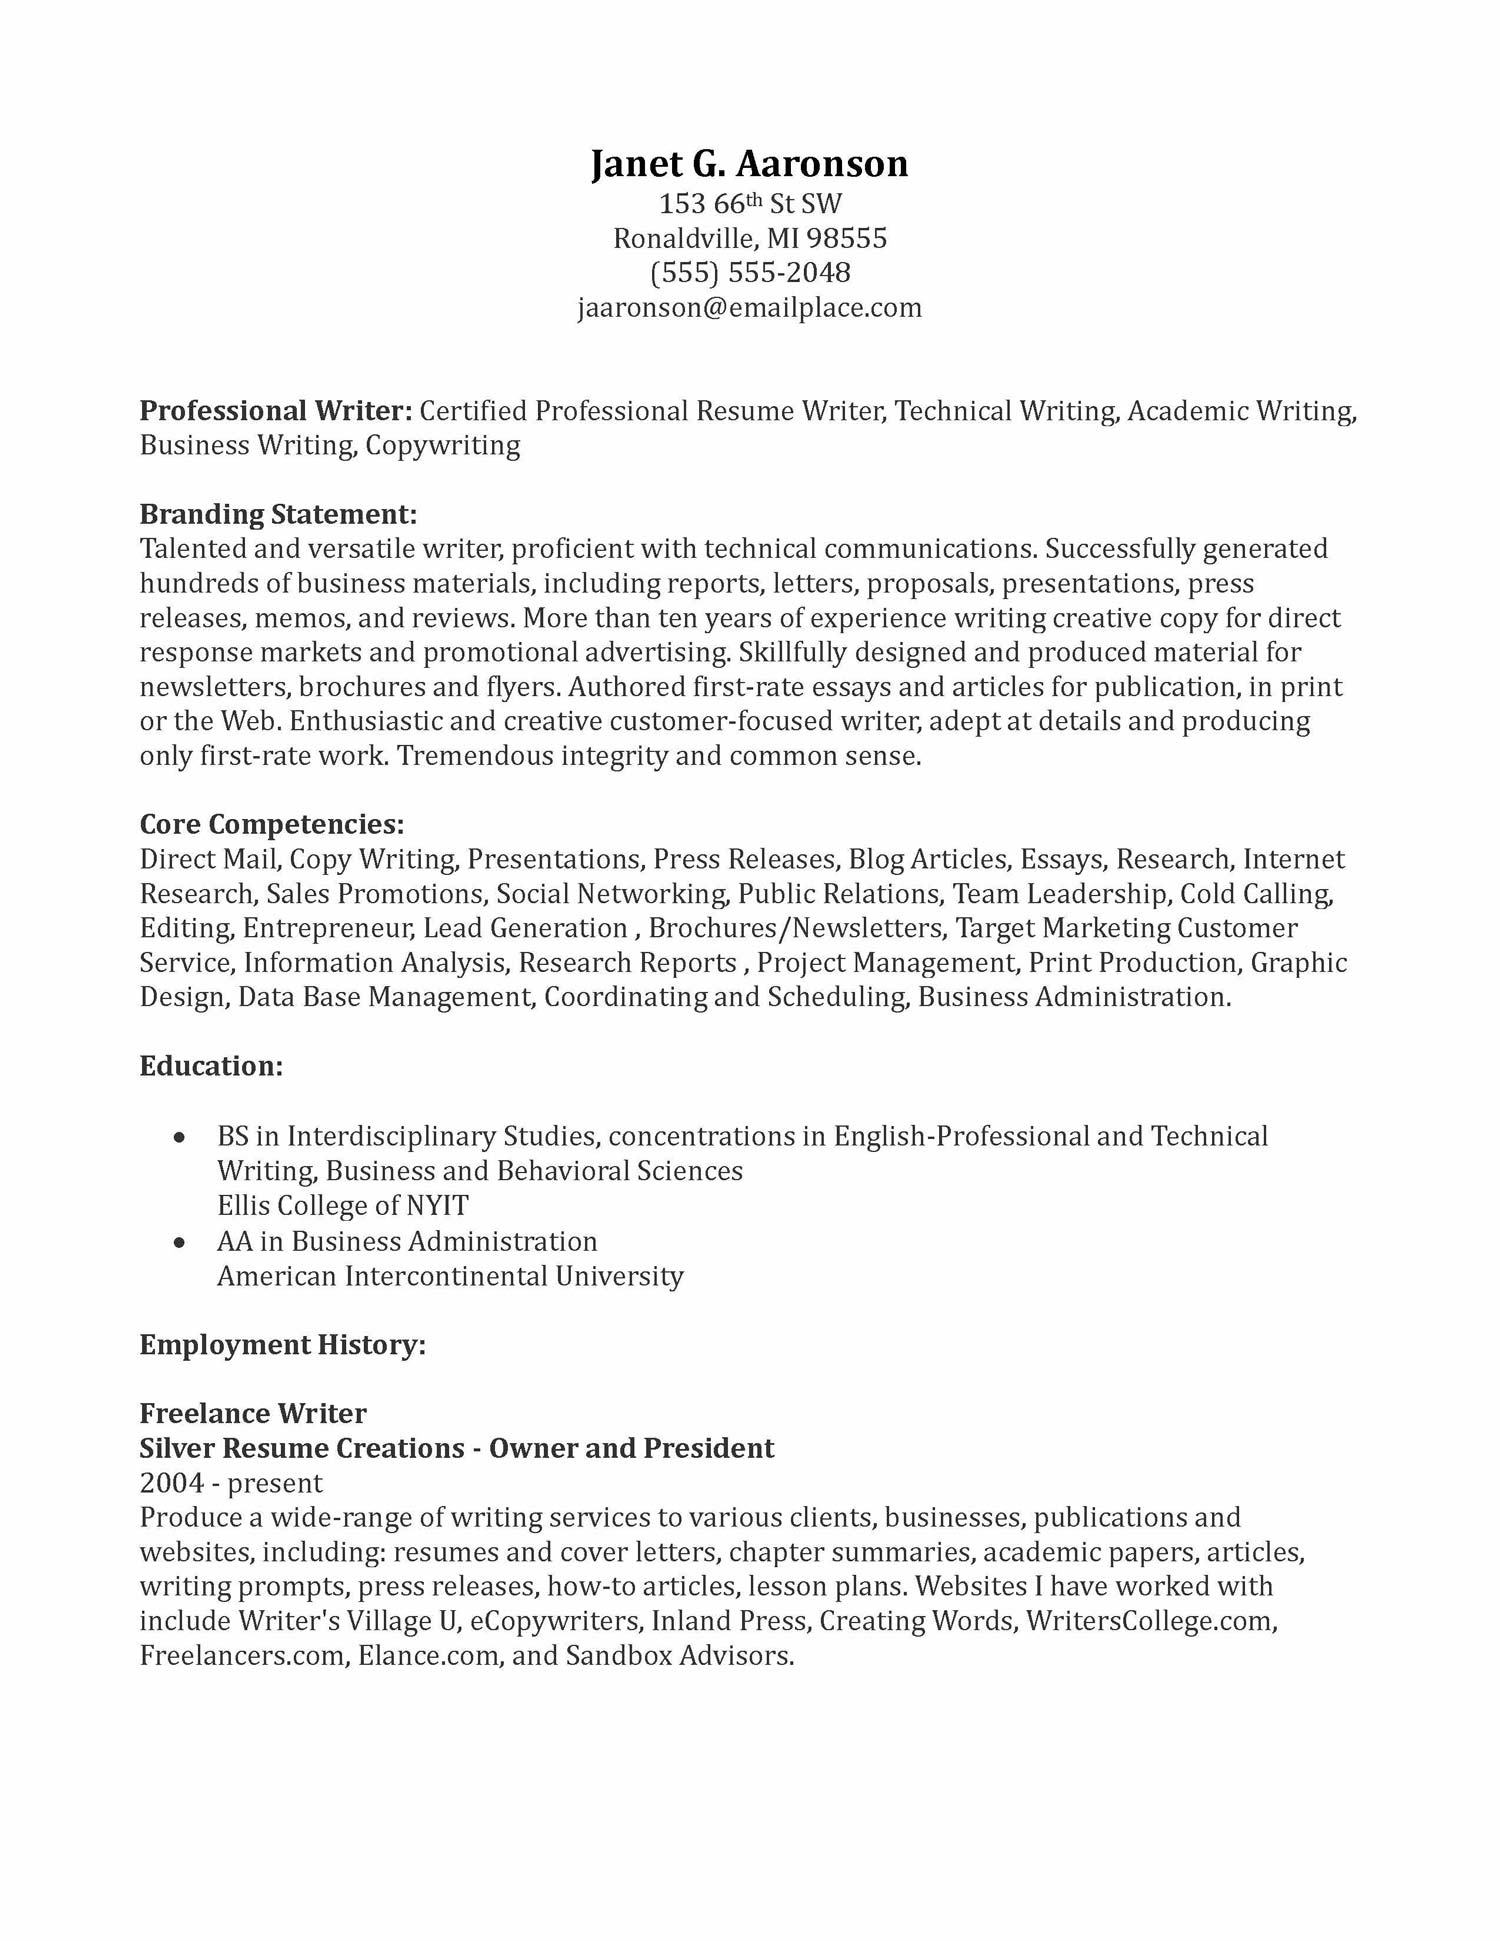 006 Academic Essays Online Writing Freelance Professional Cv Pdf Example Essay Writ College Jobs Uk Fearsome Read Buy Full